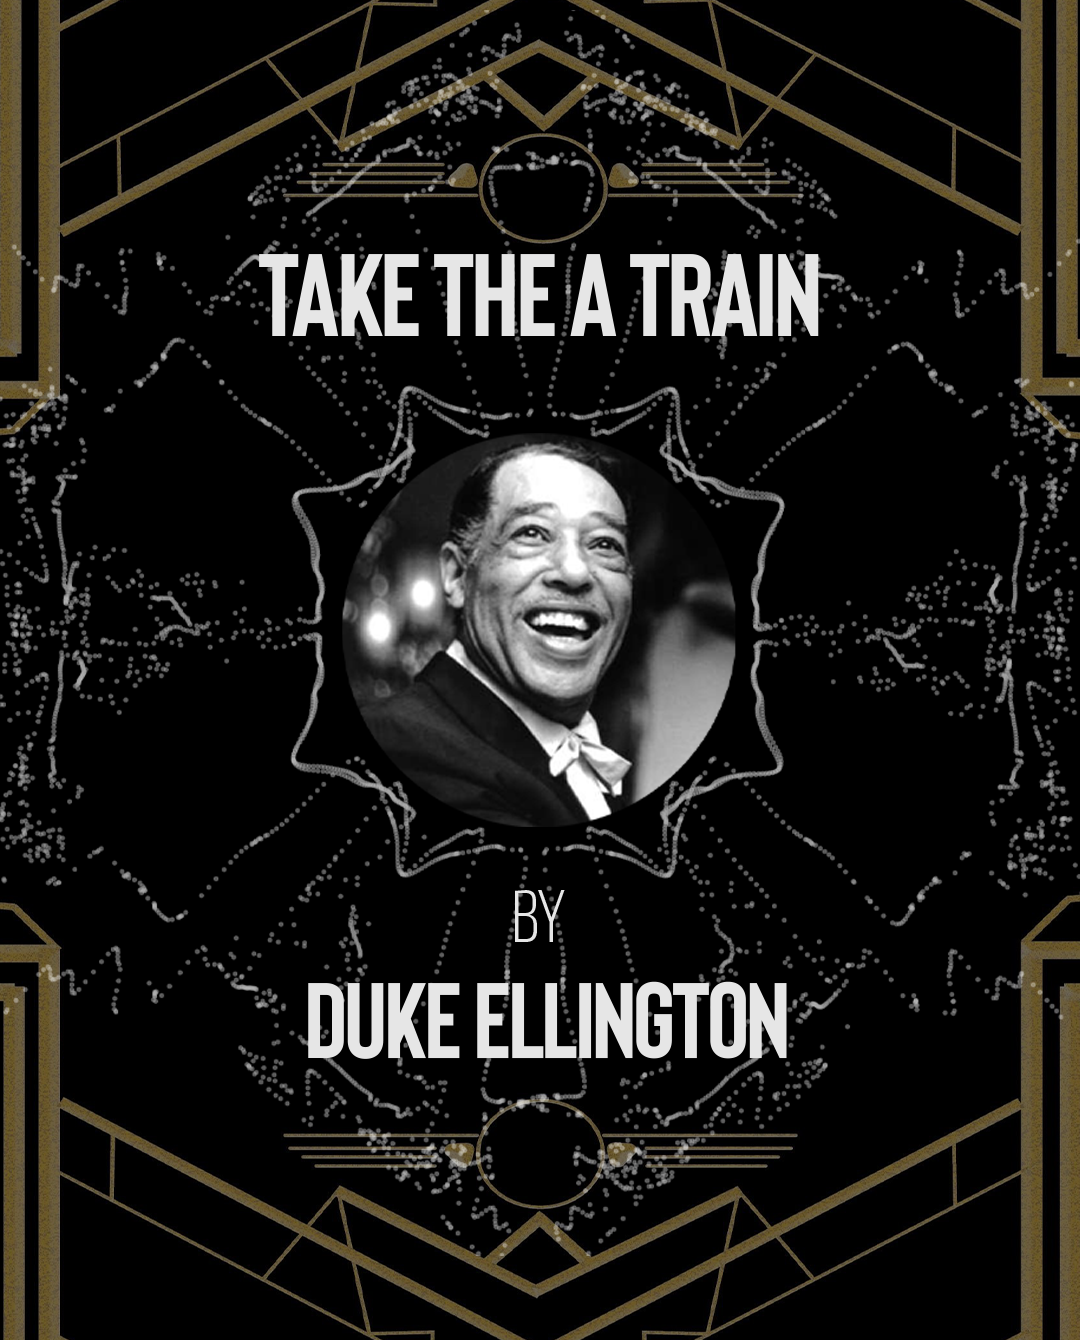 The complete 1930s Preservation Playlist Blog with Duke Ellington's Take the A Train